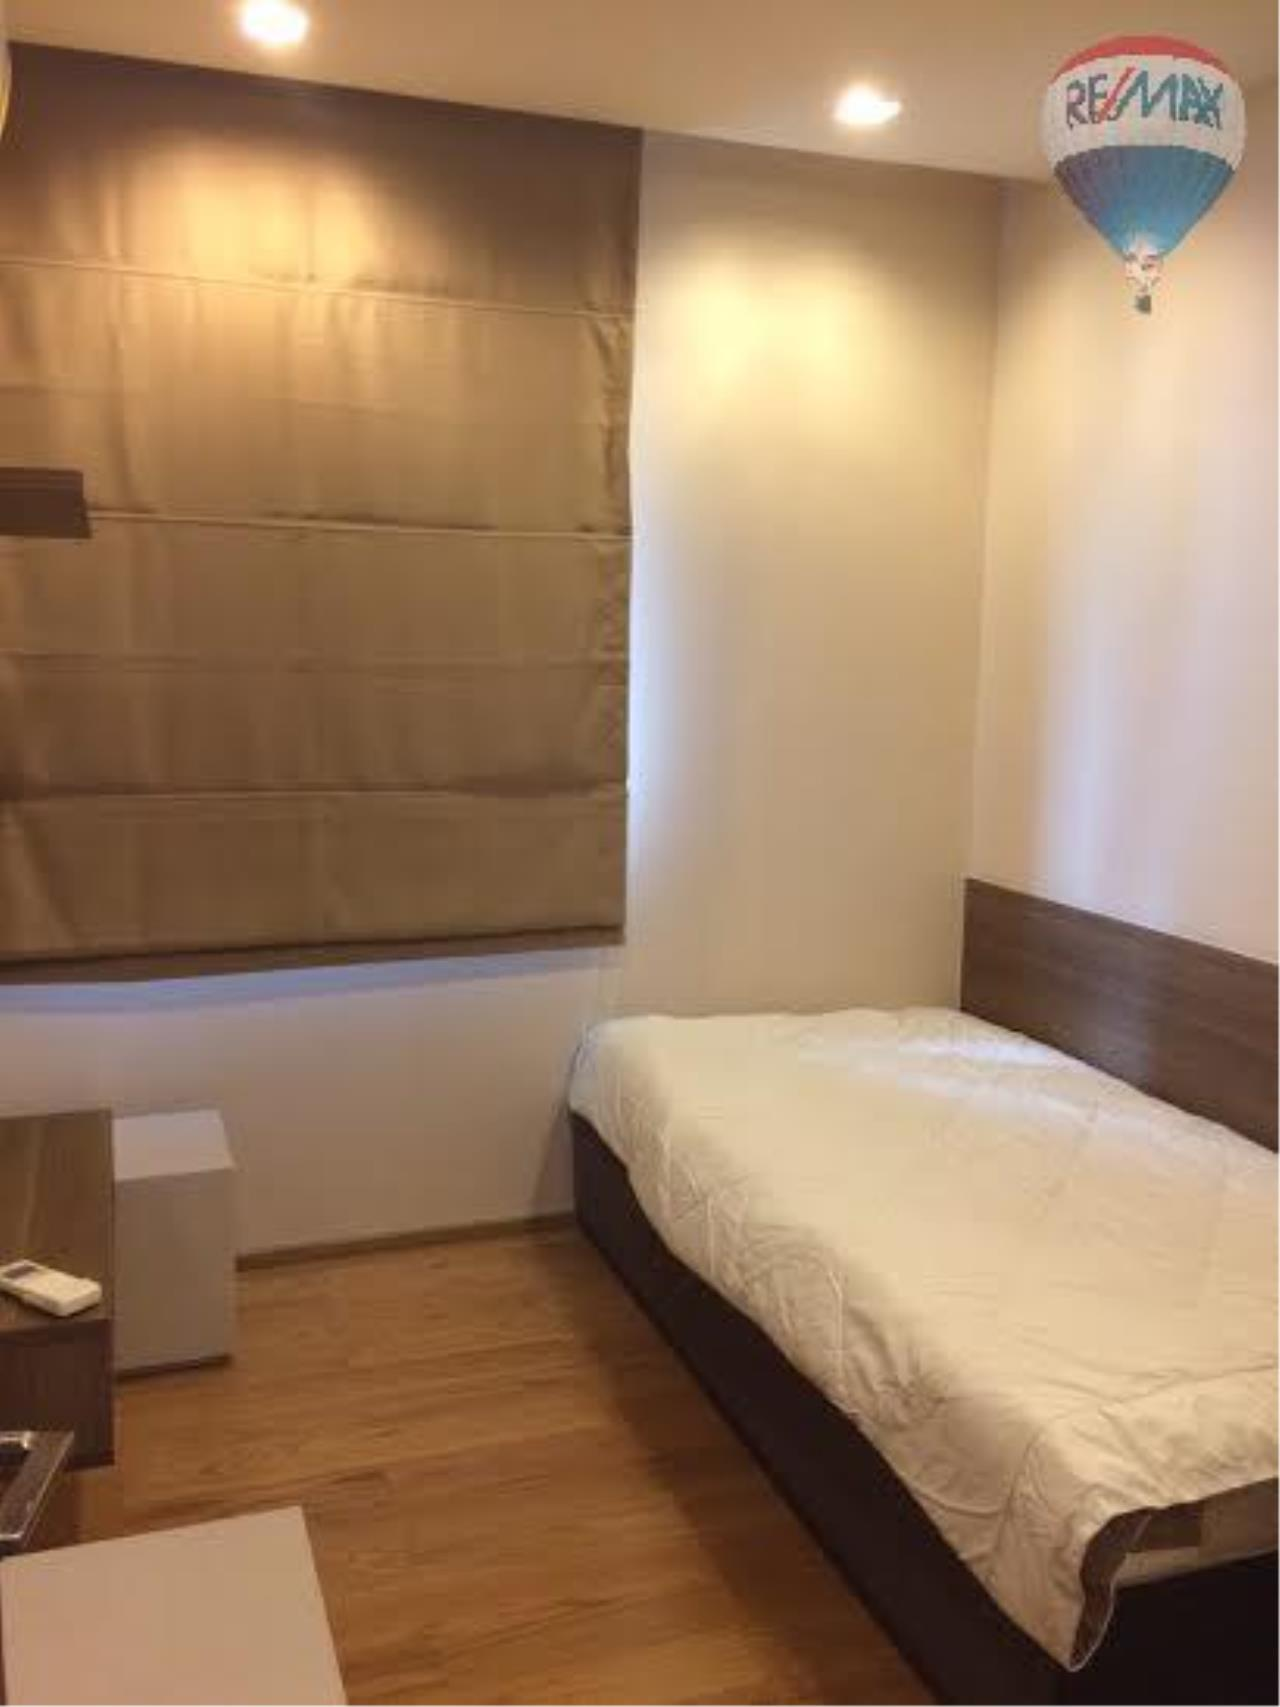 RE/MAX Properties Agency's 2 Bedrooms 80.5 Sq.M. for renting 60K in The Address Sathorn 6